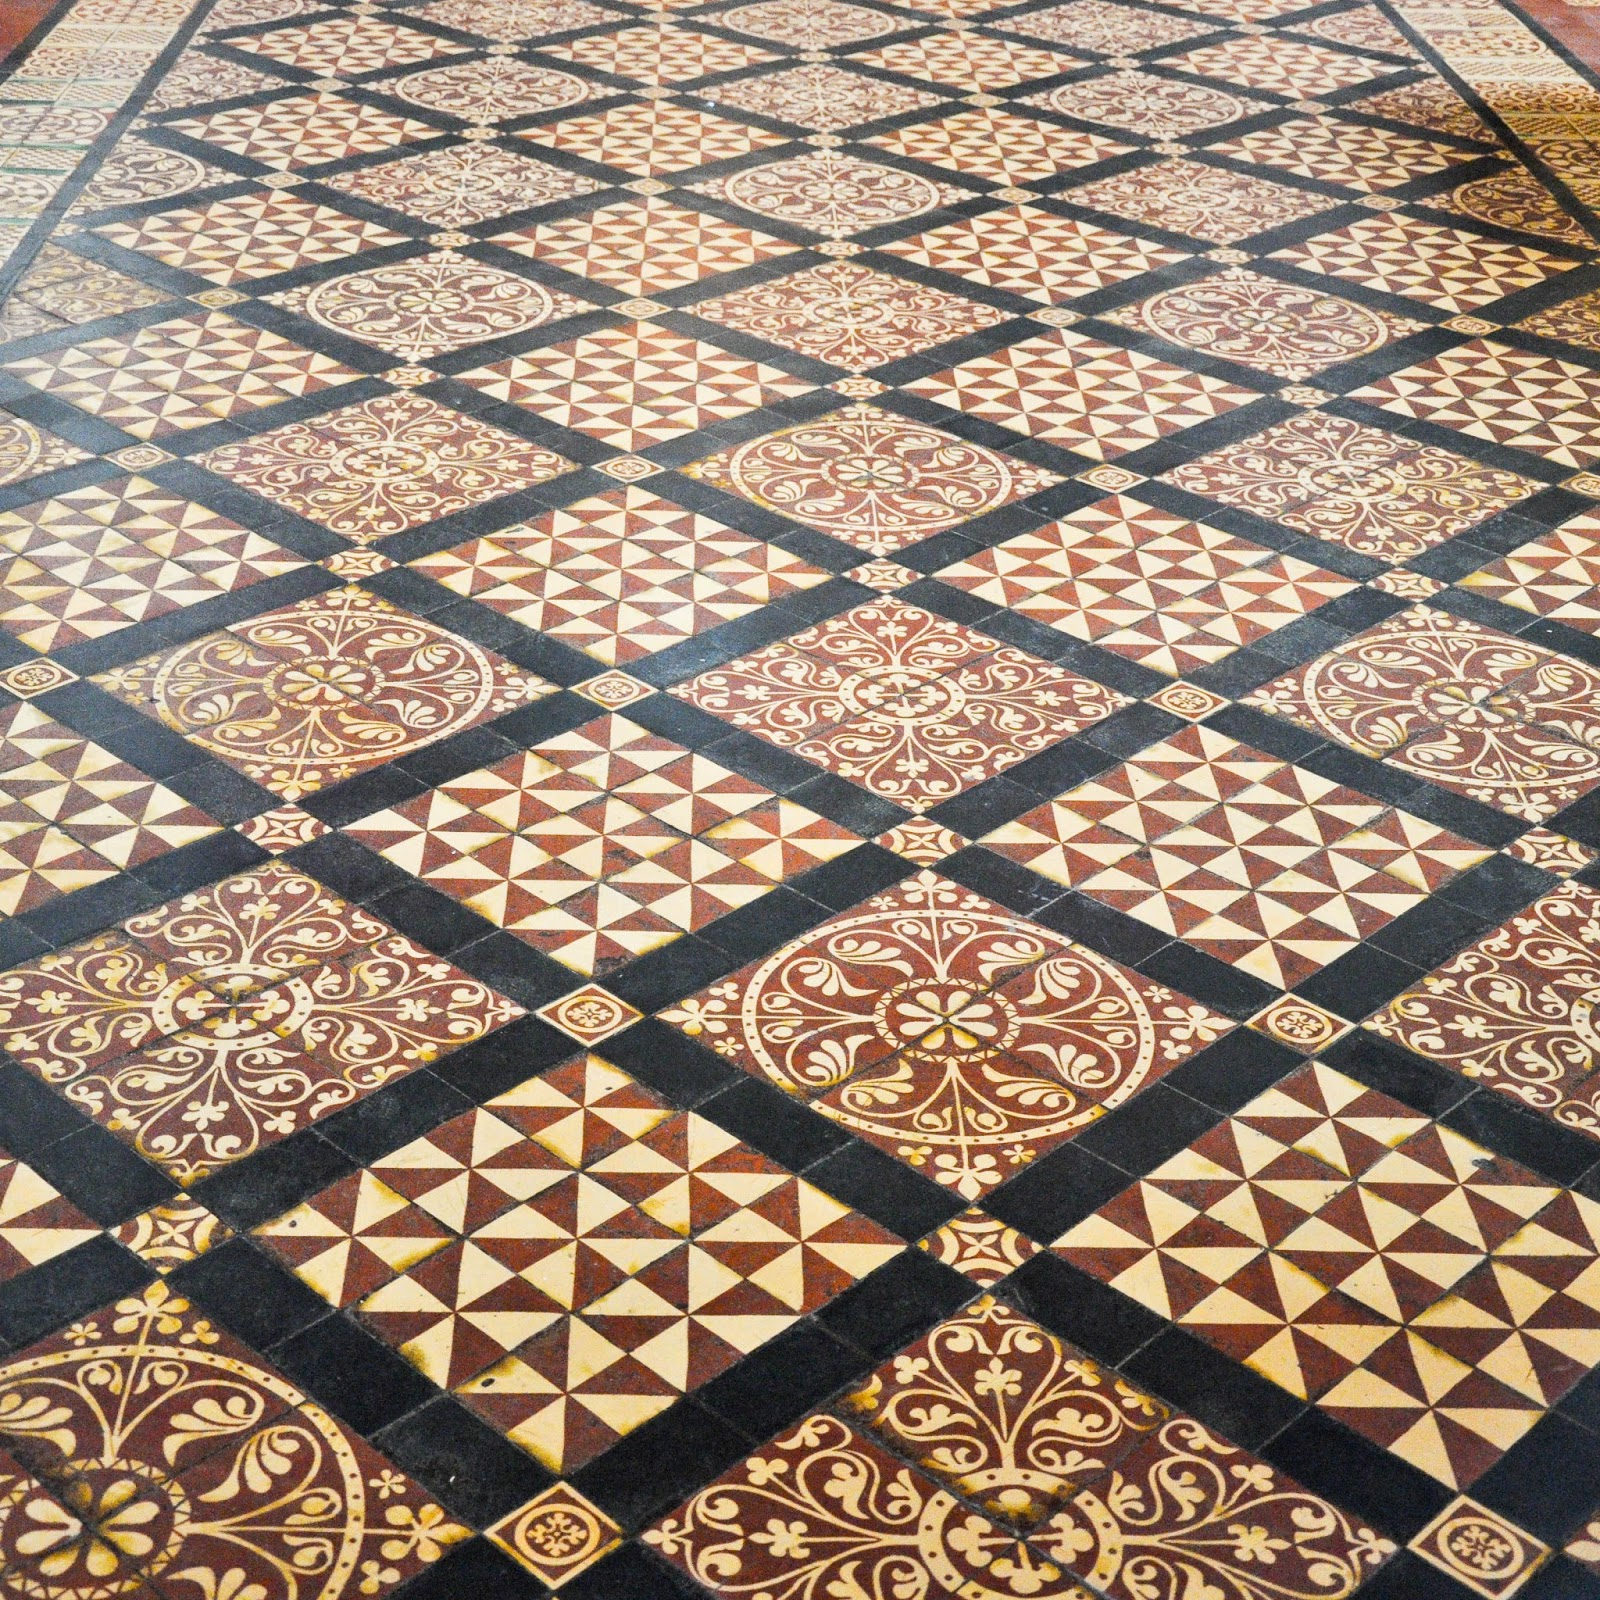 A close-up of the floor, St. Albans Cathedral, St. Albans, Herts, England